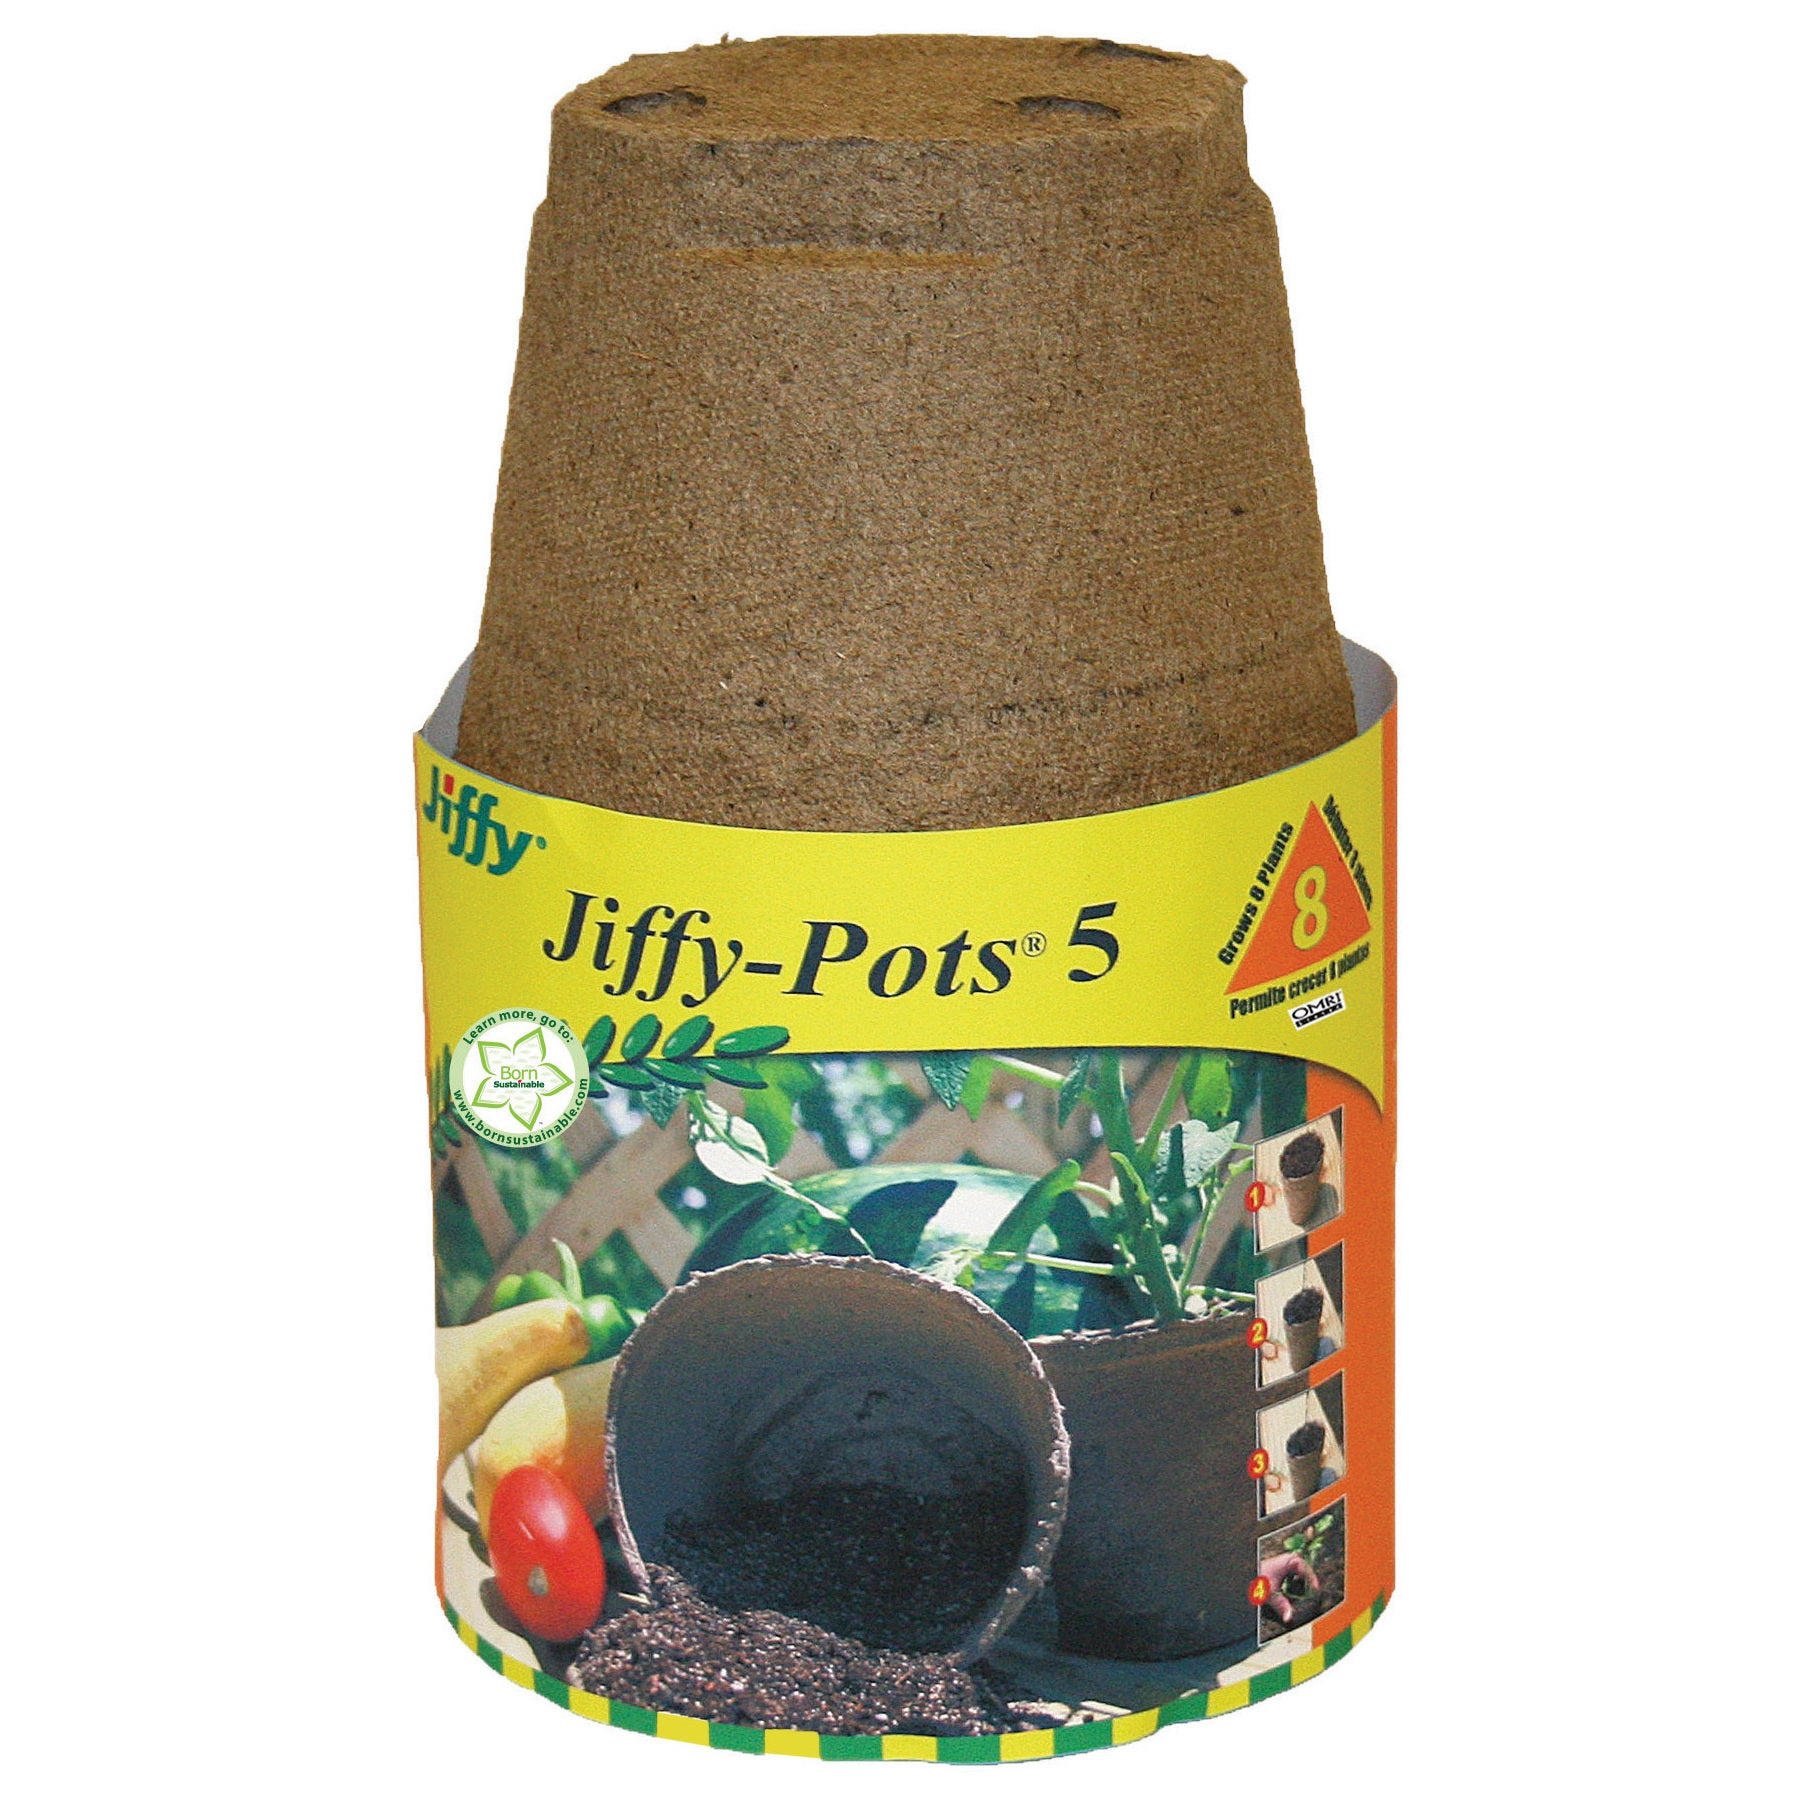 Jiffy JP506 8-count Round Jiffy Pots 5 (Plant Starters) (...